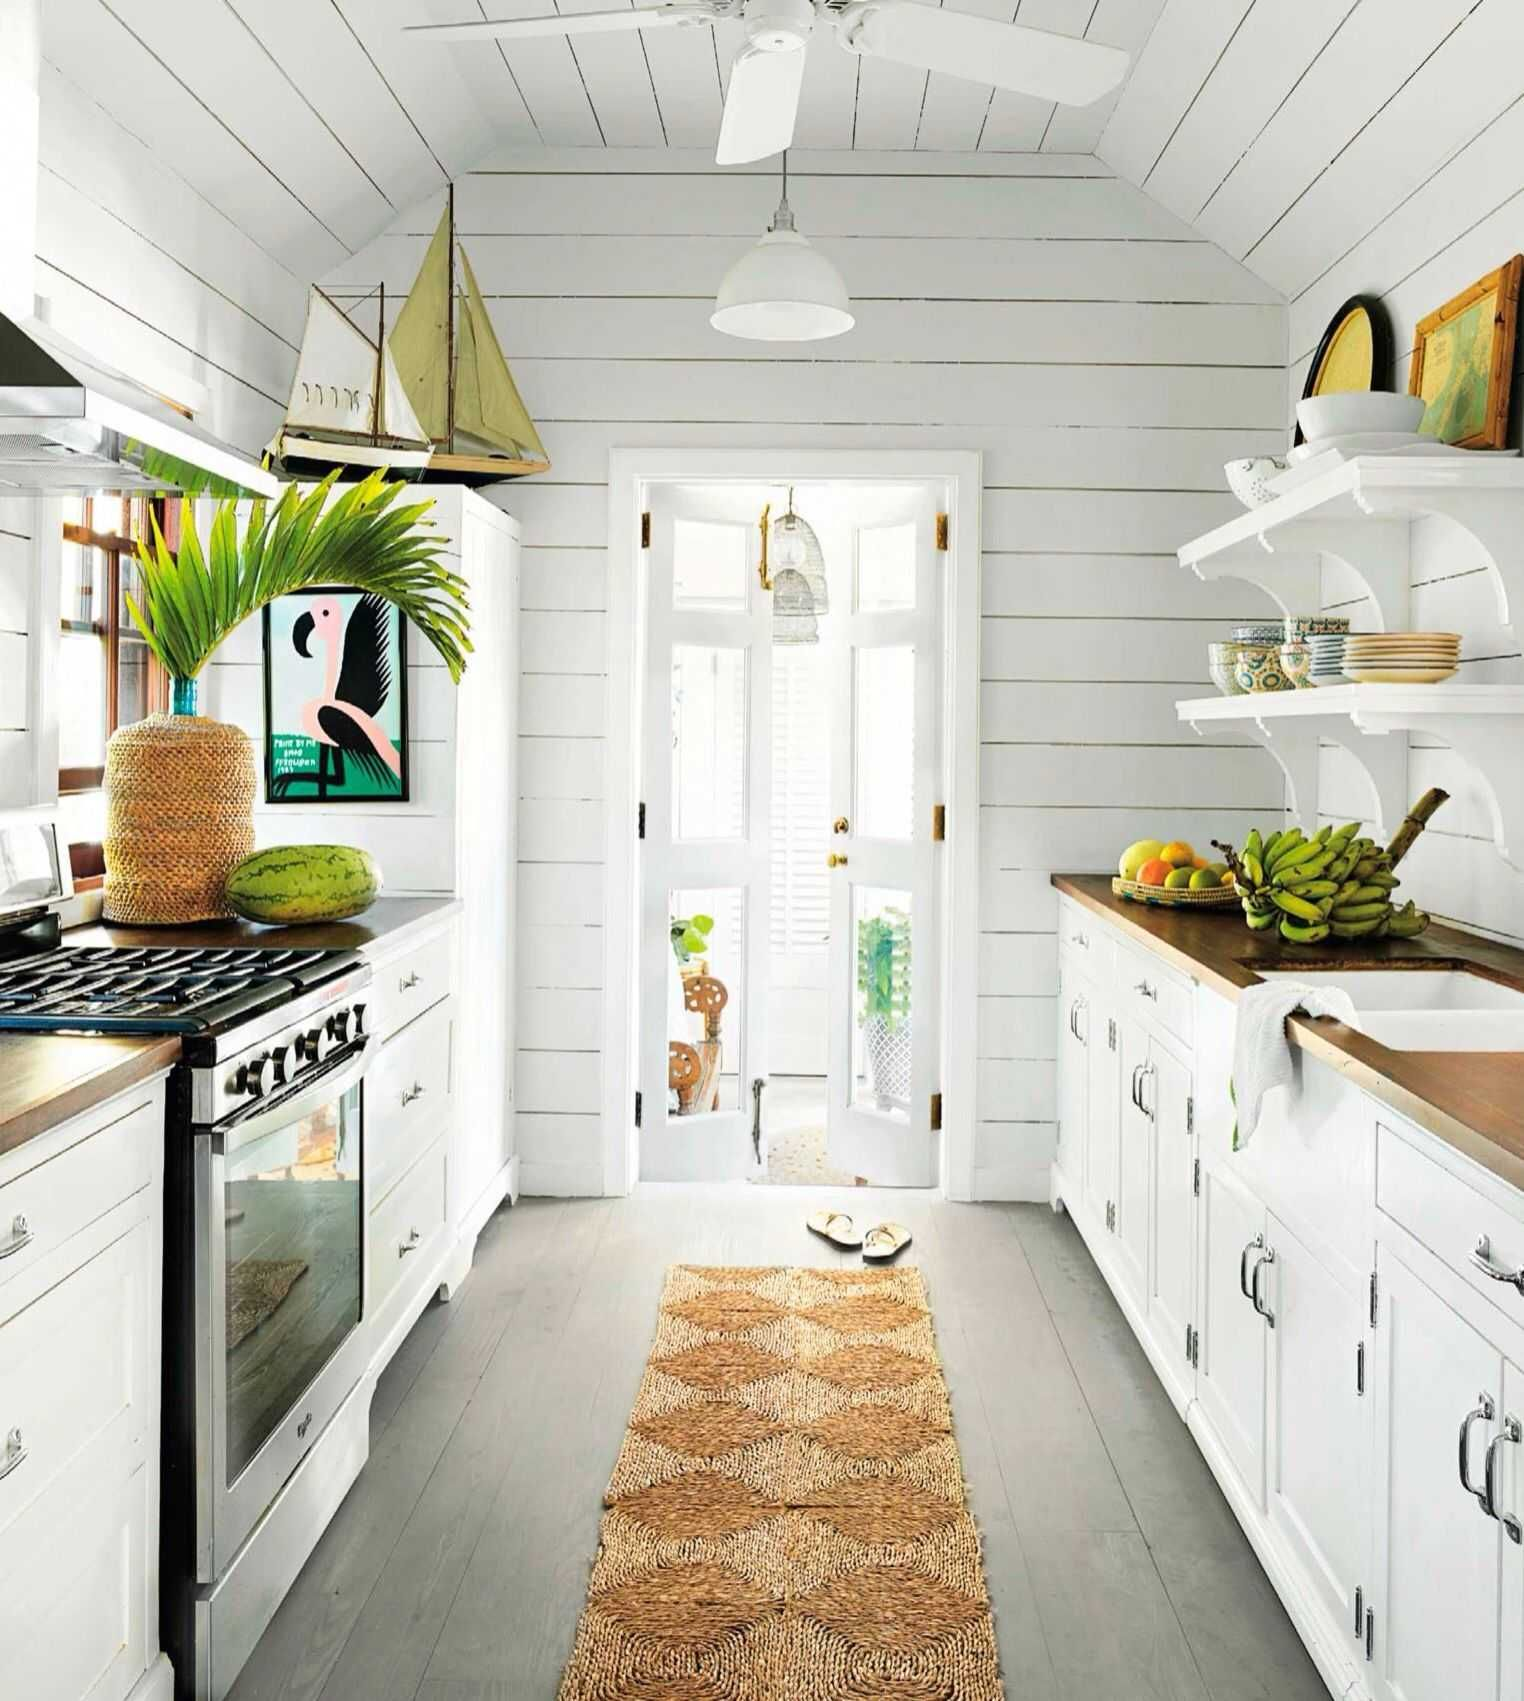 Scandinavian Farmhouse Kitchen Inspirational Scandinavian Farmhouse Kitchen White Farmhouse Ki Beach House Kitchens Beach House Interior White Beach Houses